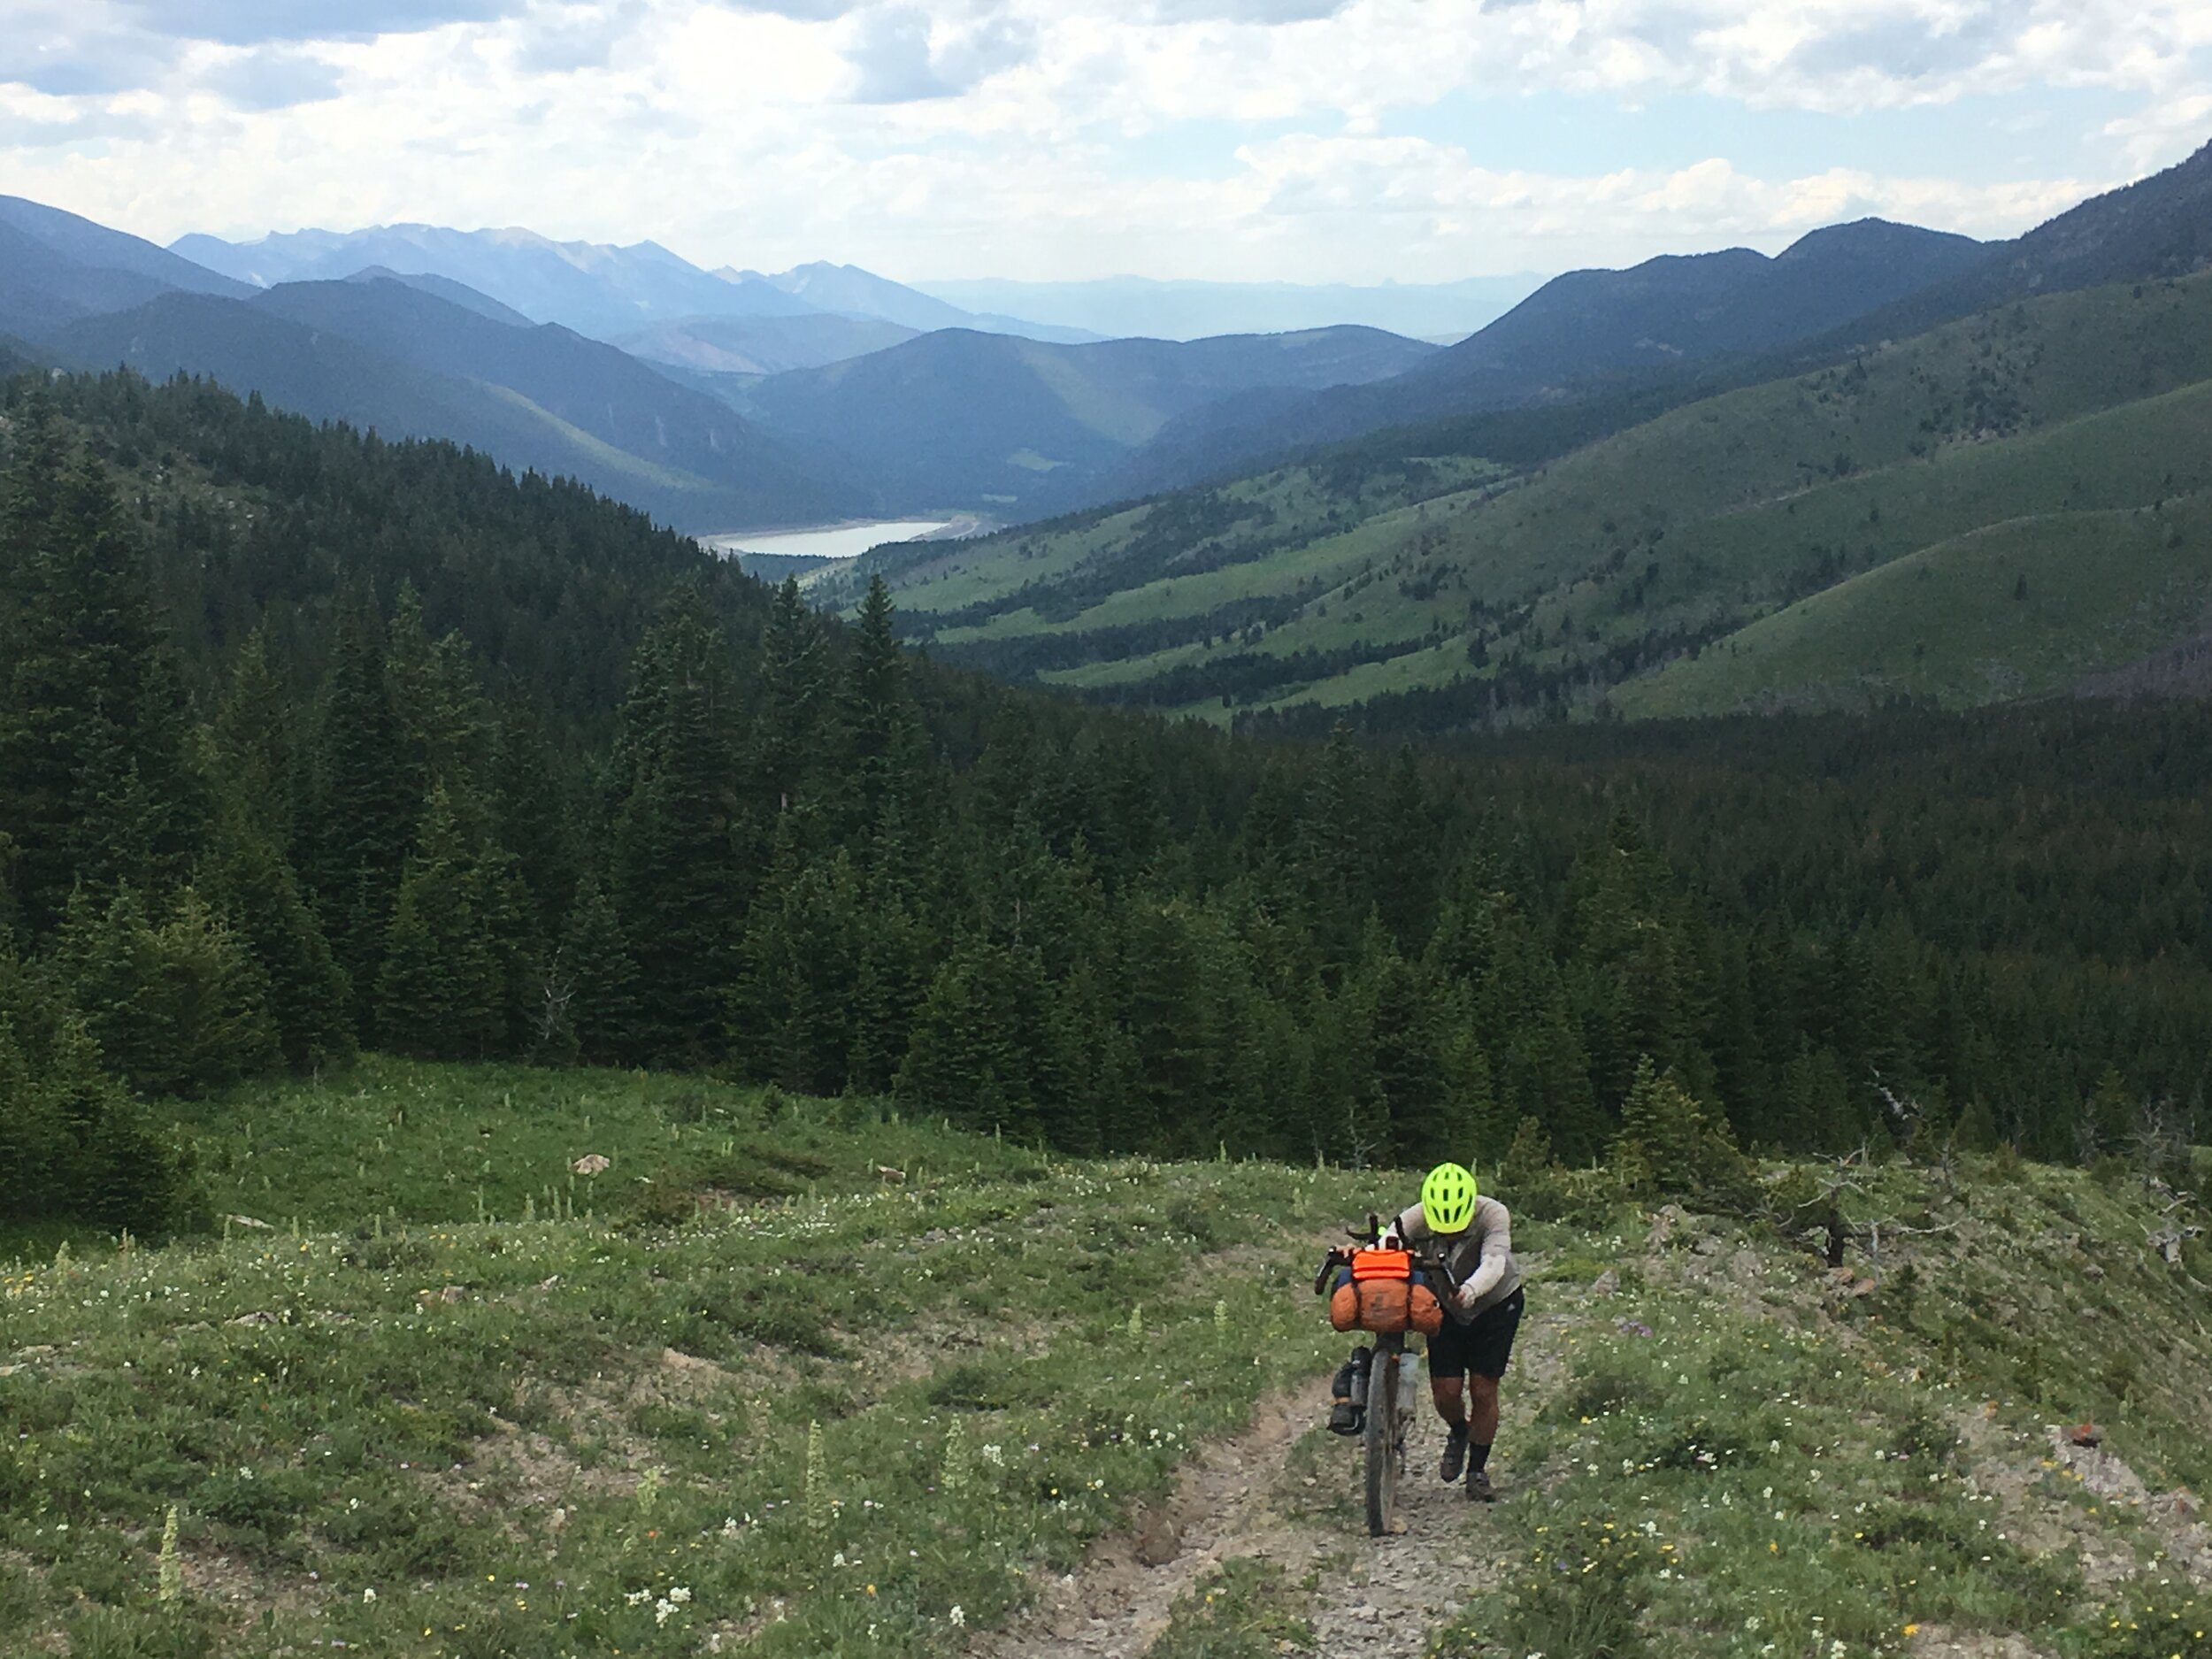 Climbing out of the East Boulder River and topping out on Meyers Pass